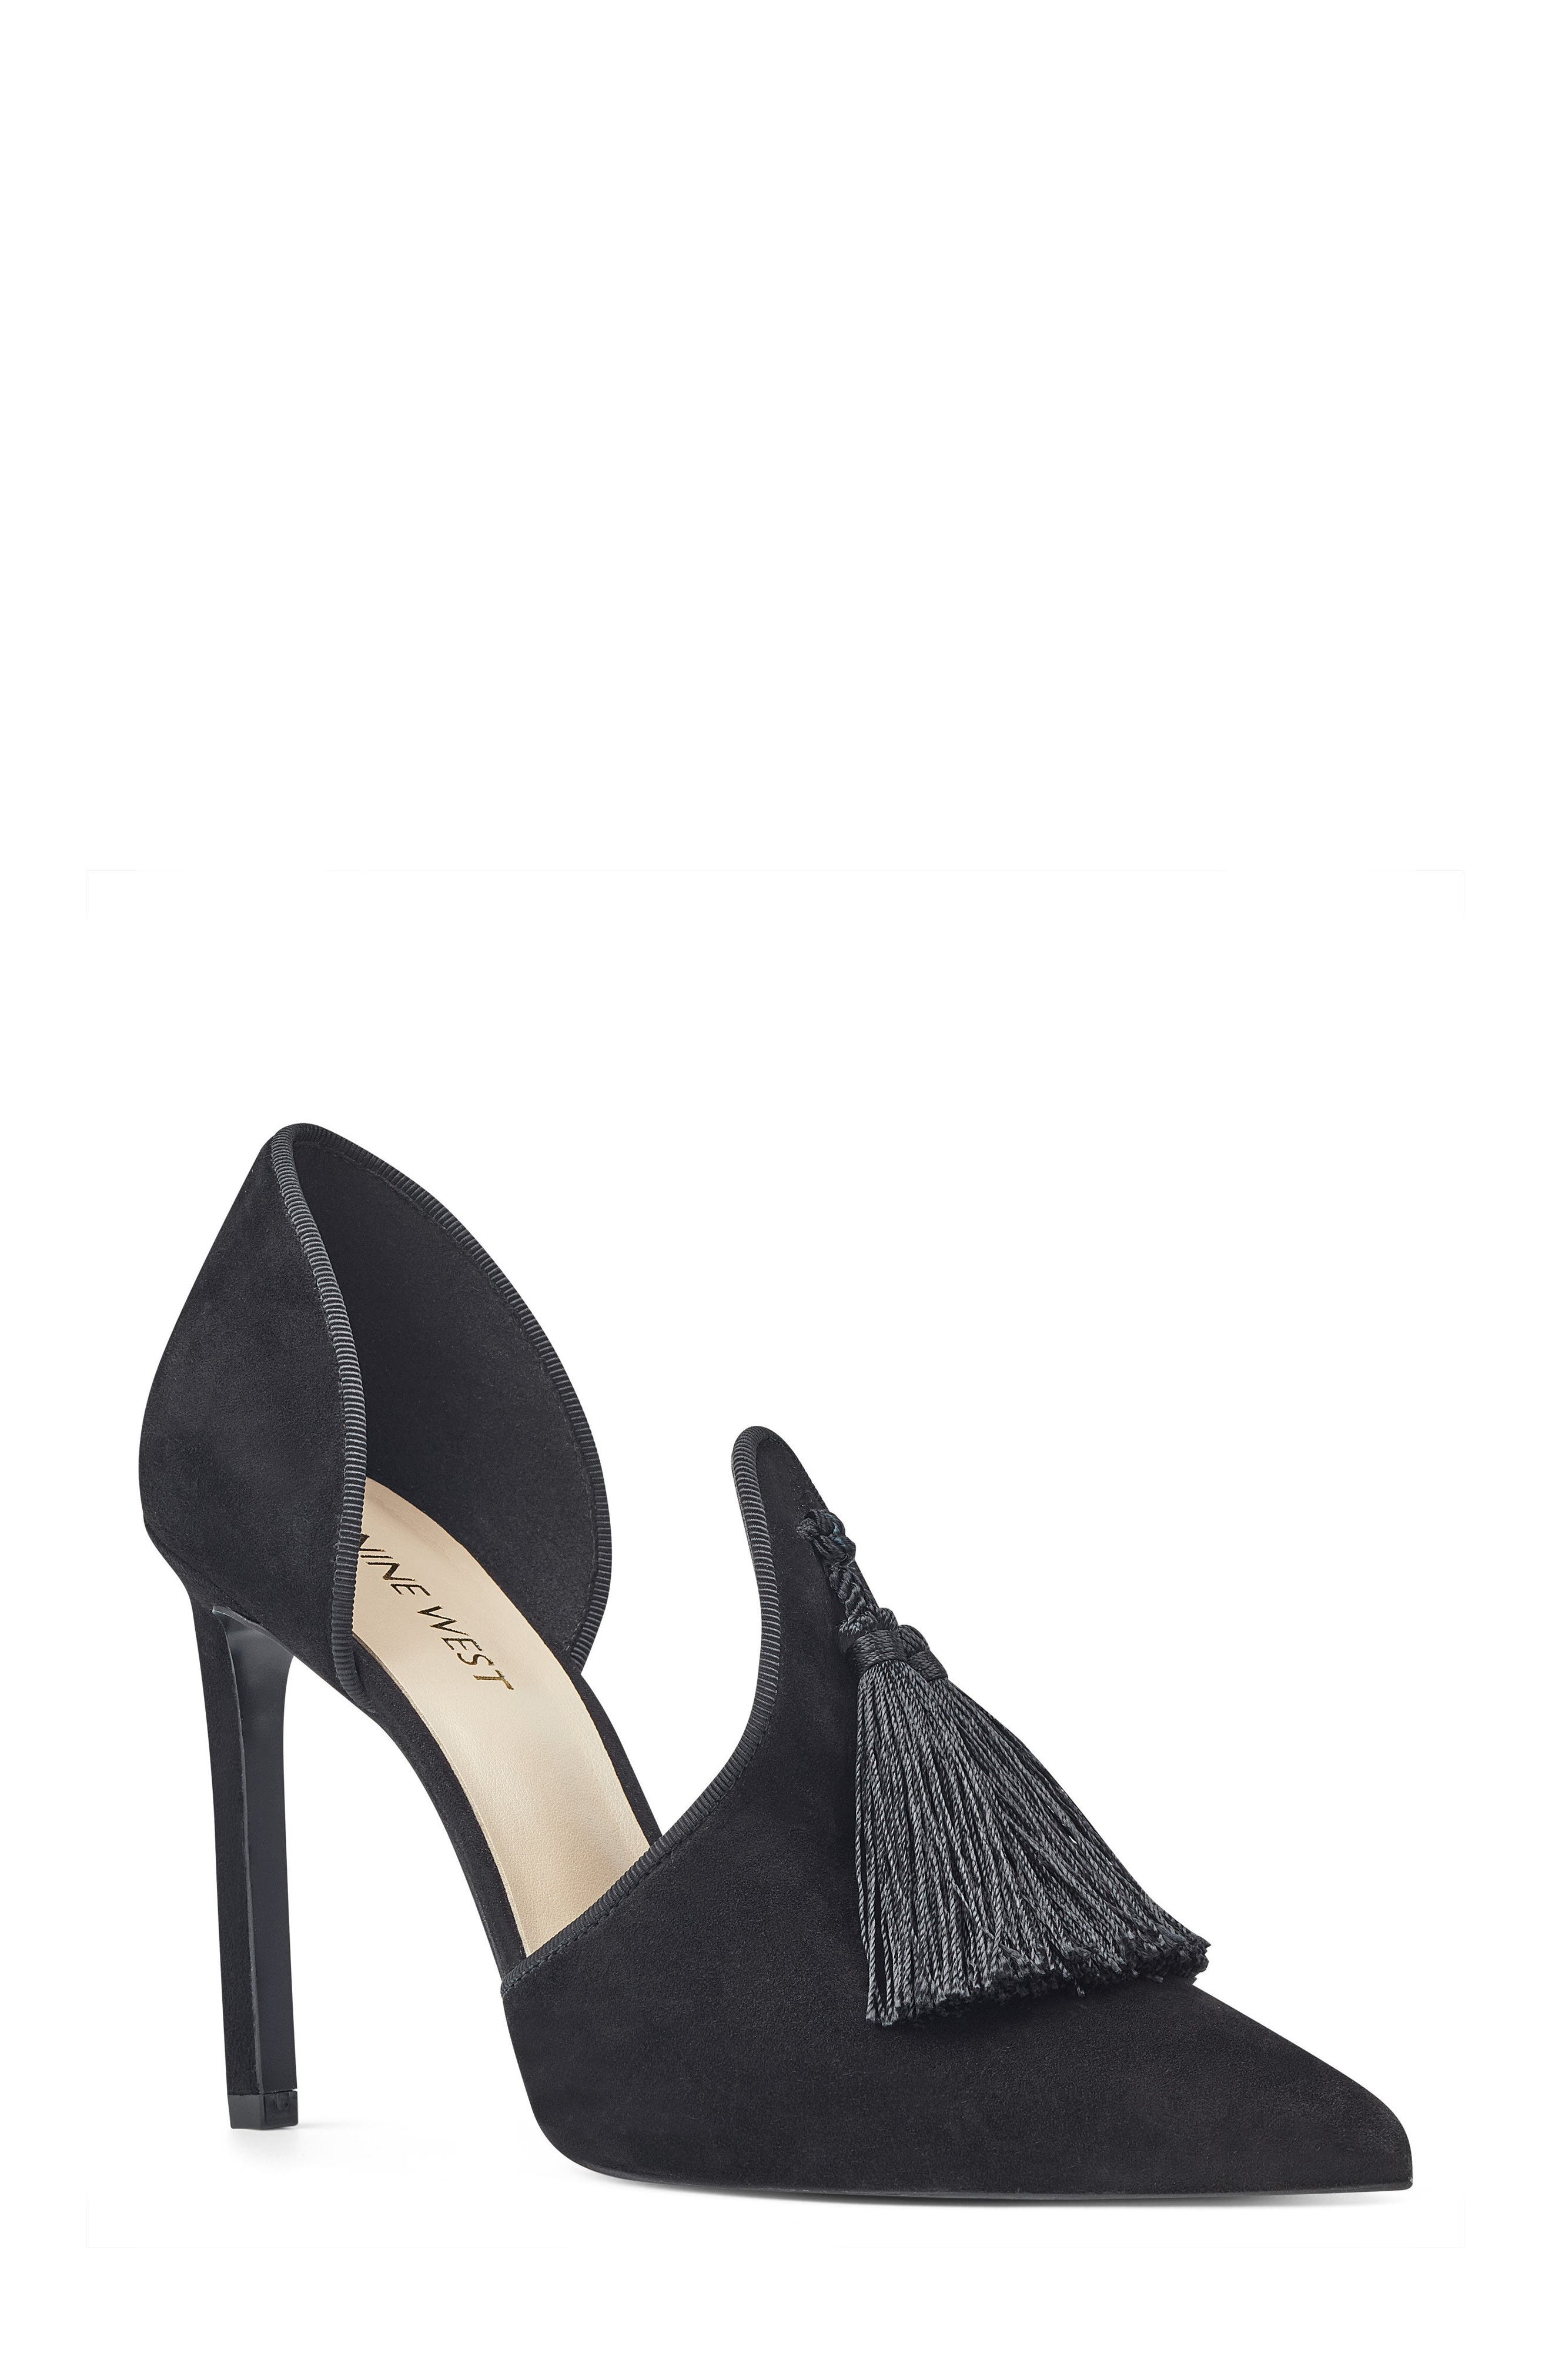 NINE WEST Tyrell Pointy Toe dOrsay Pump